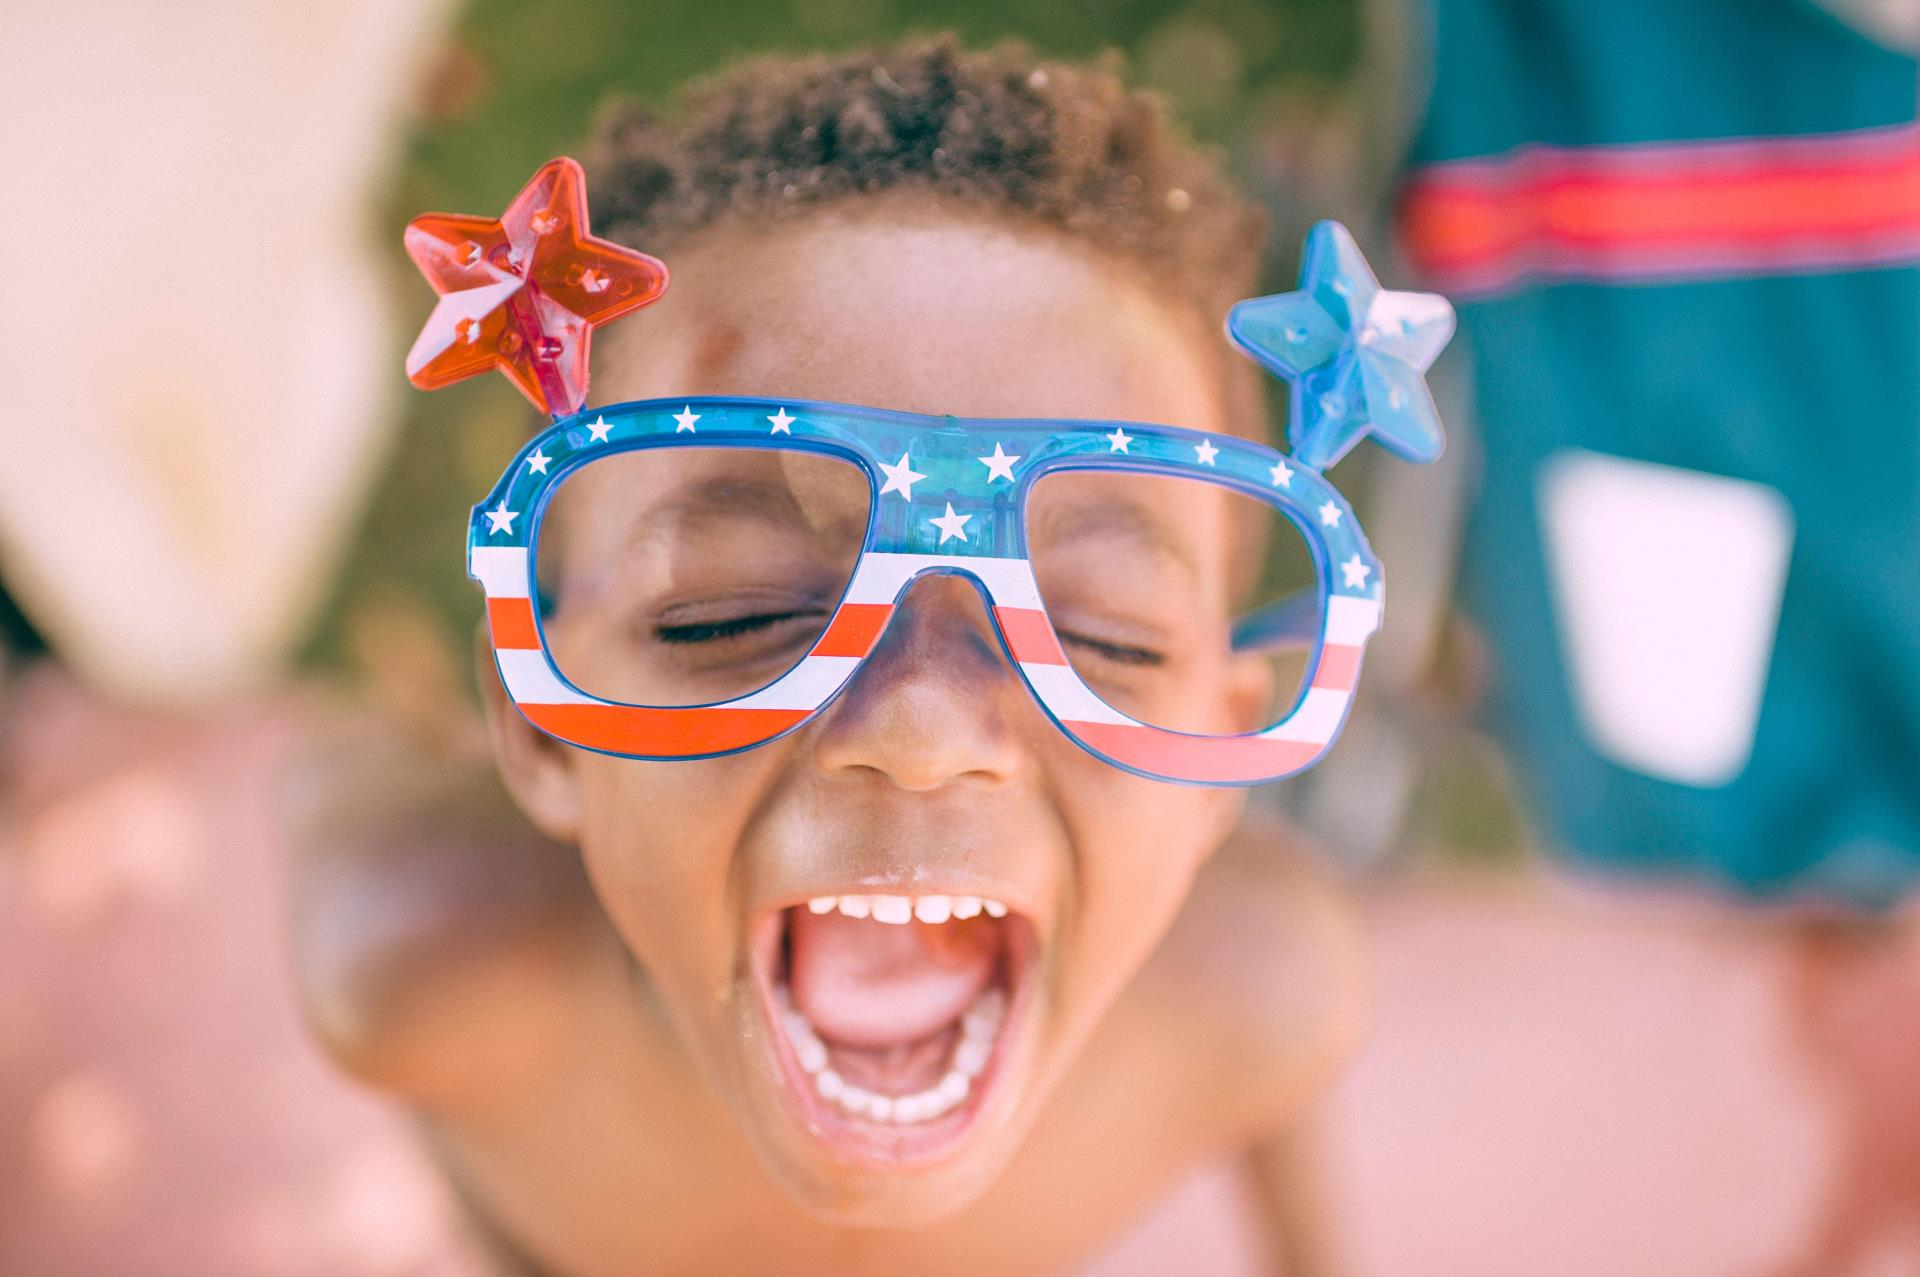 boy wearing red, white and blue sunglasses